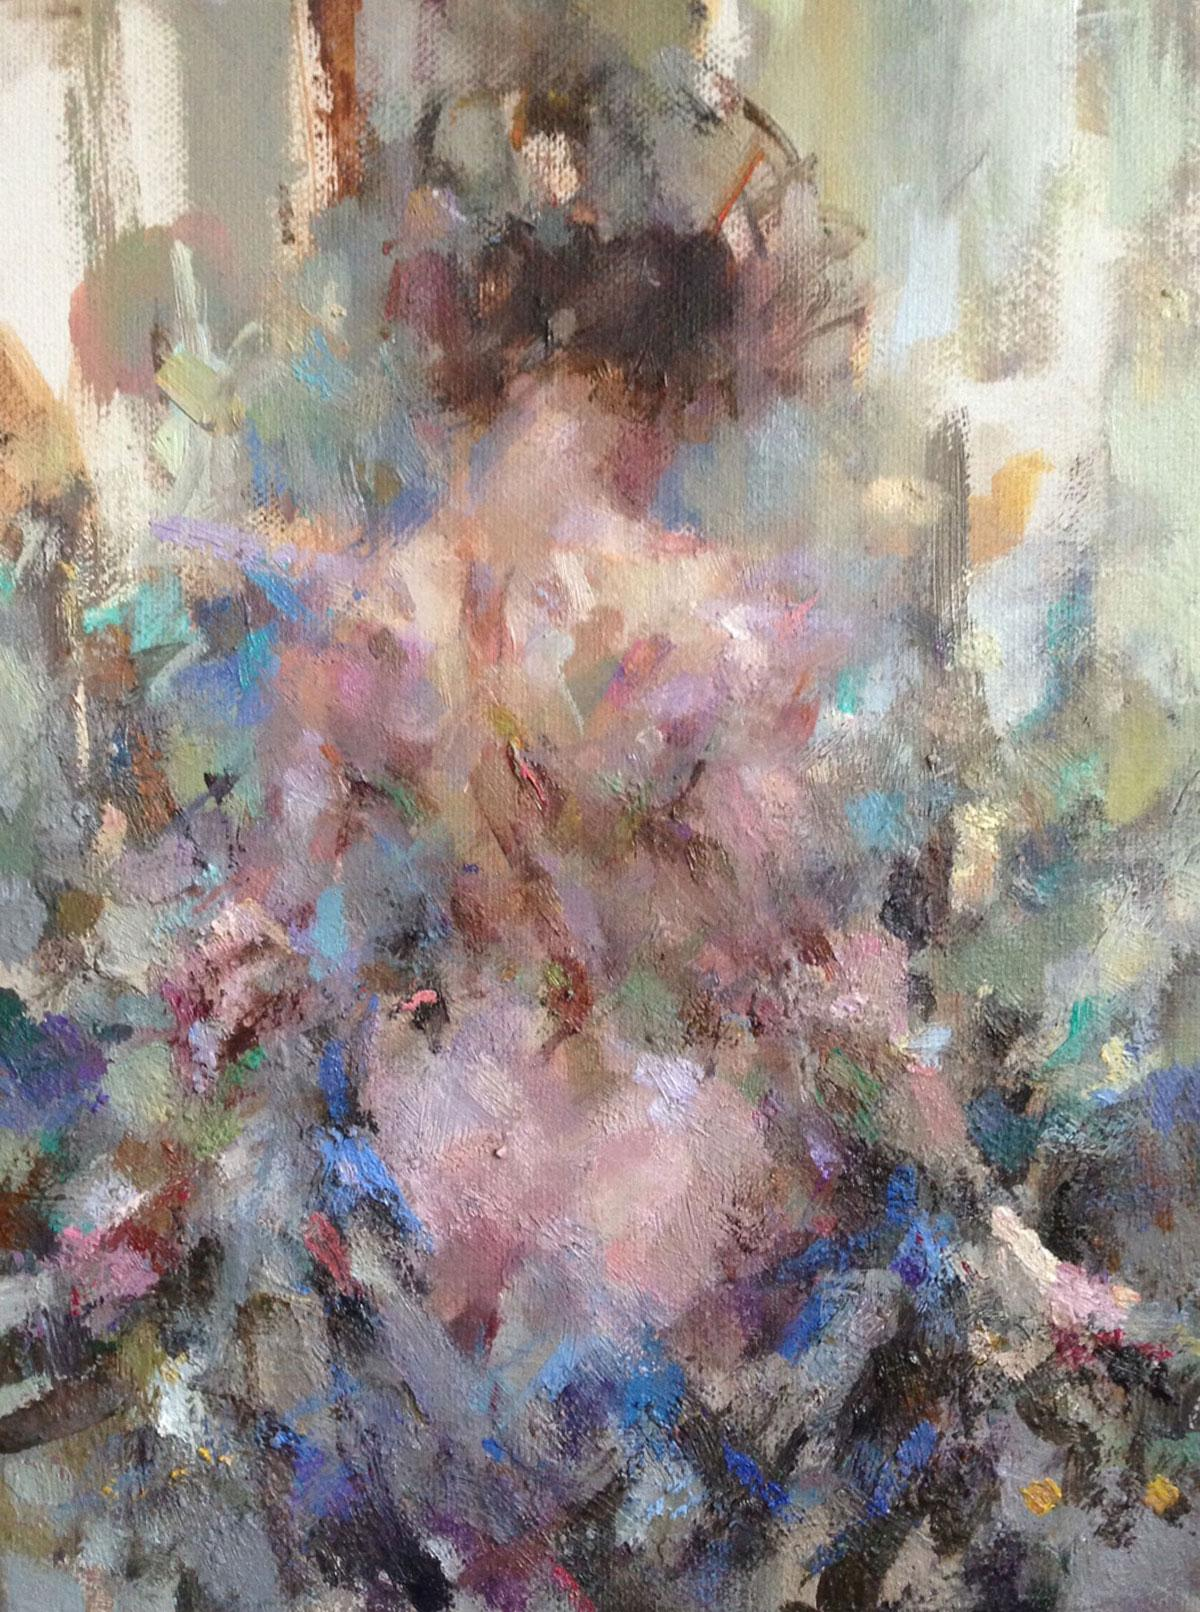 Vittoria, arms outstretched - contemporary figurative female nude oil painting